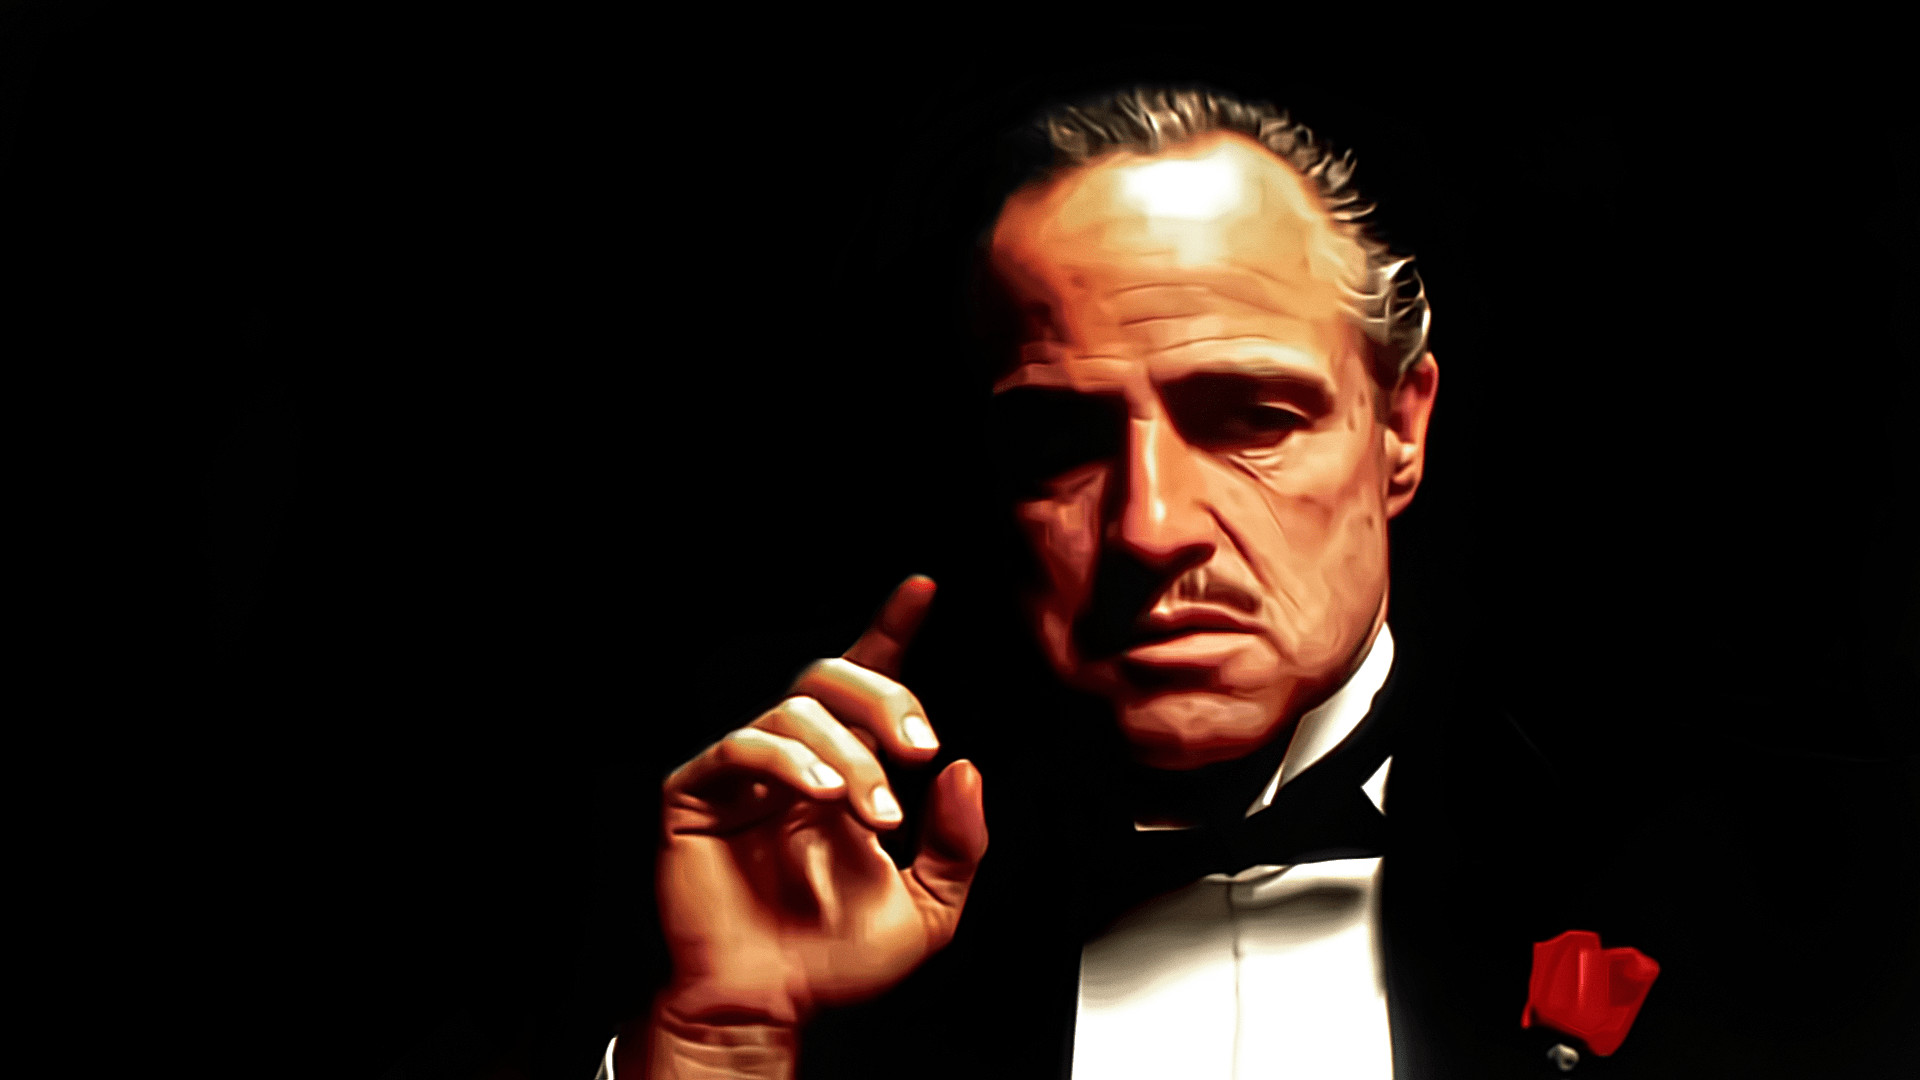 The Godfather Wallpapers 62 Images